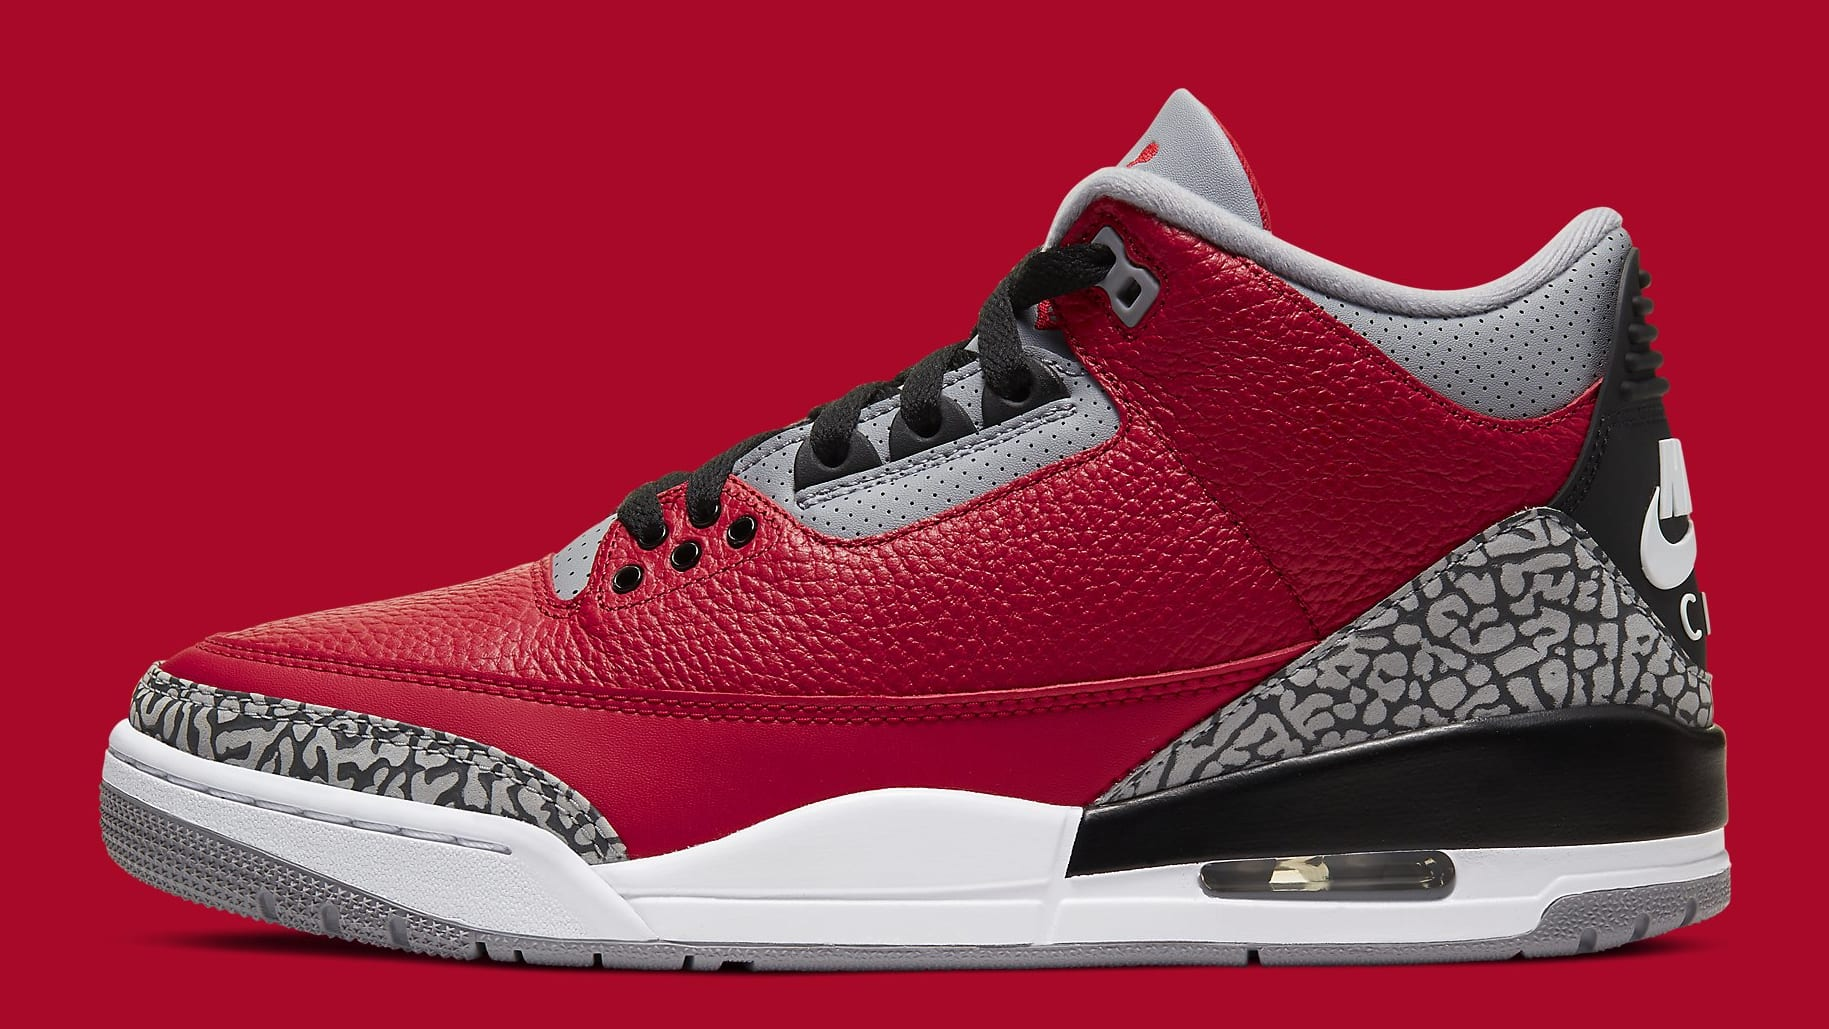 Air Jordan 3 CHI Exclusive Release Date CU2277-600 Profile